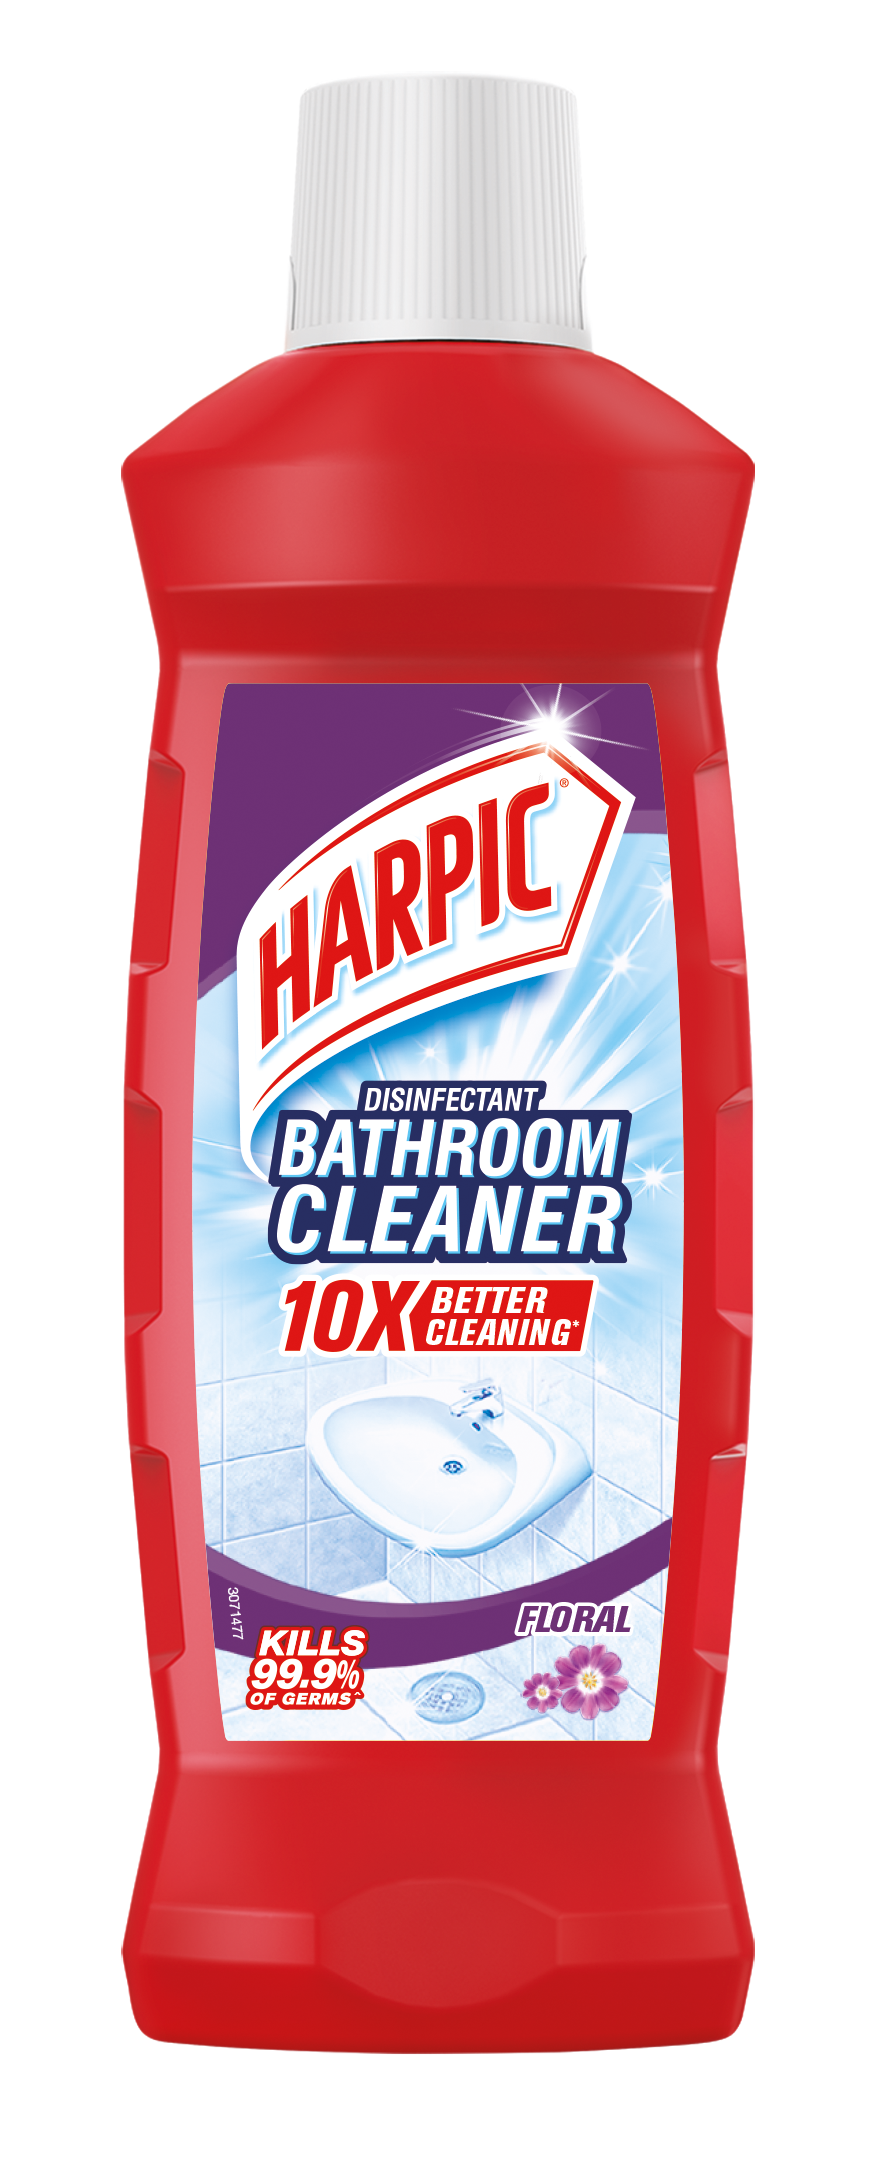 Harpic Bathroom Cleaner